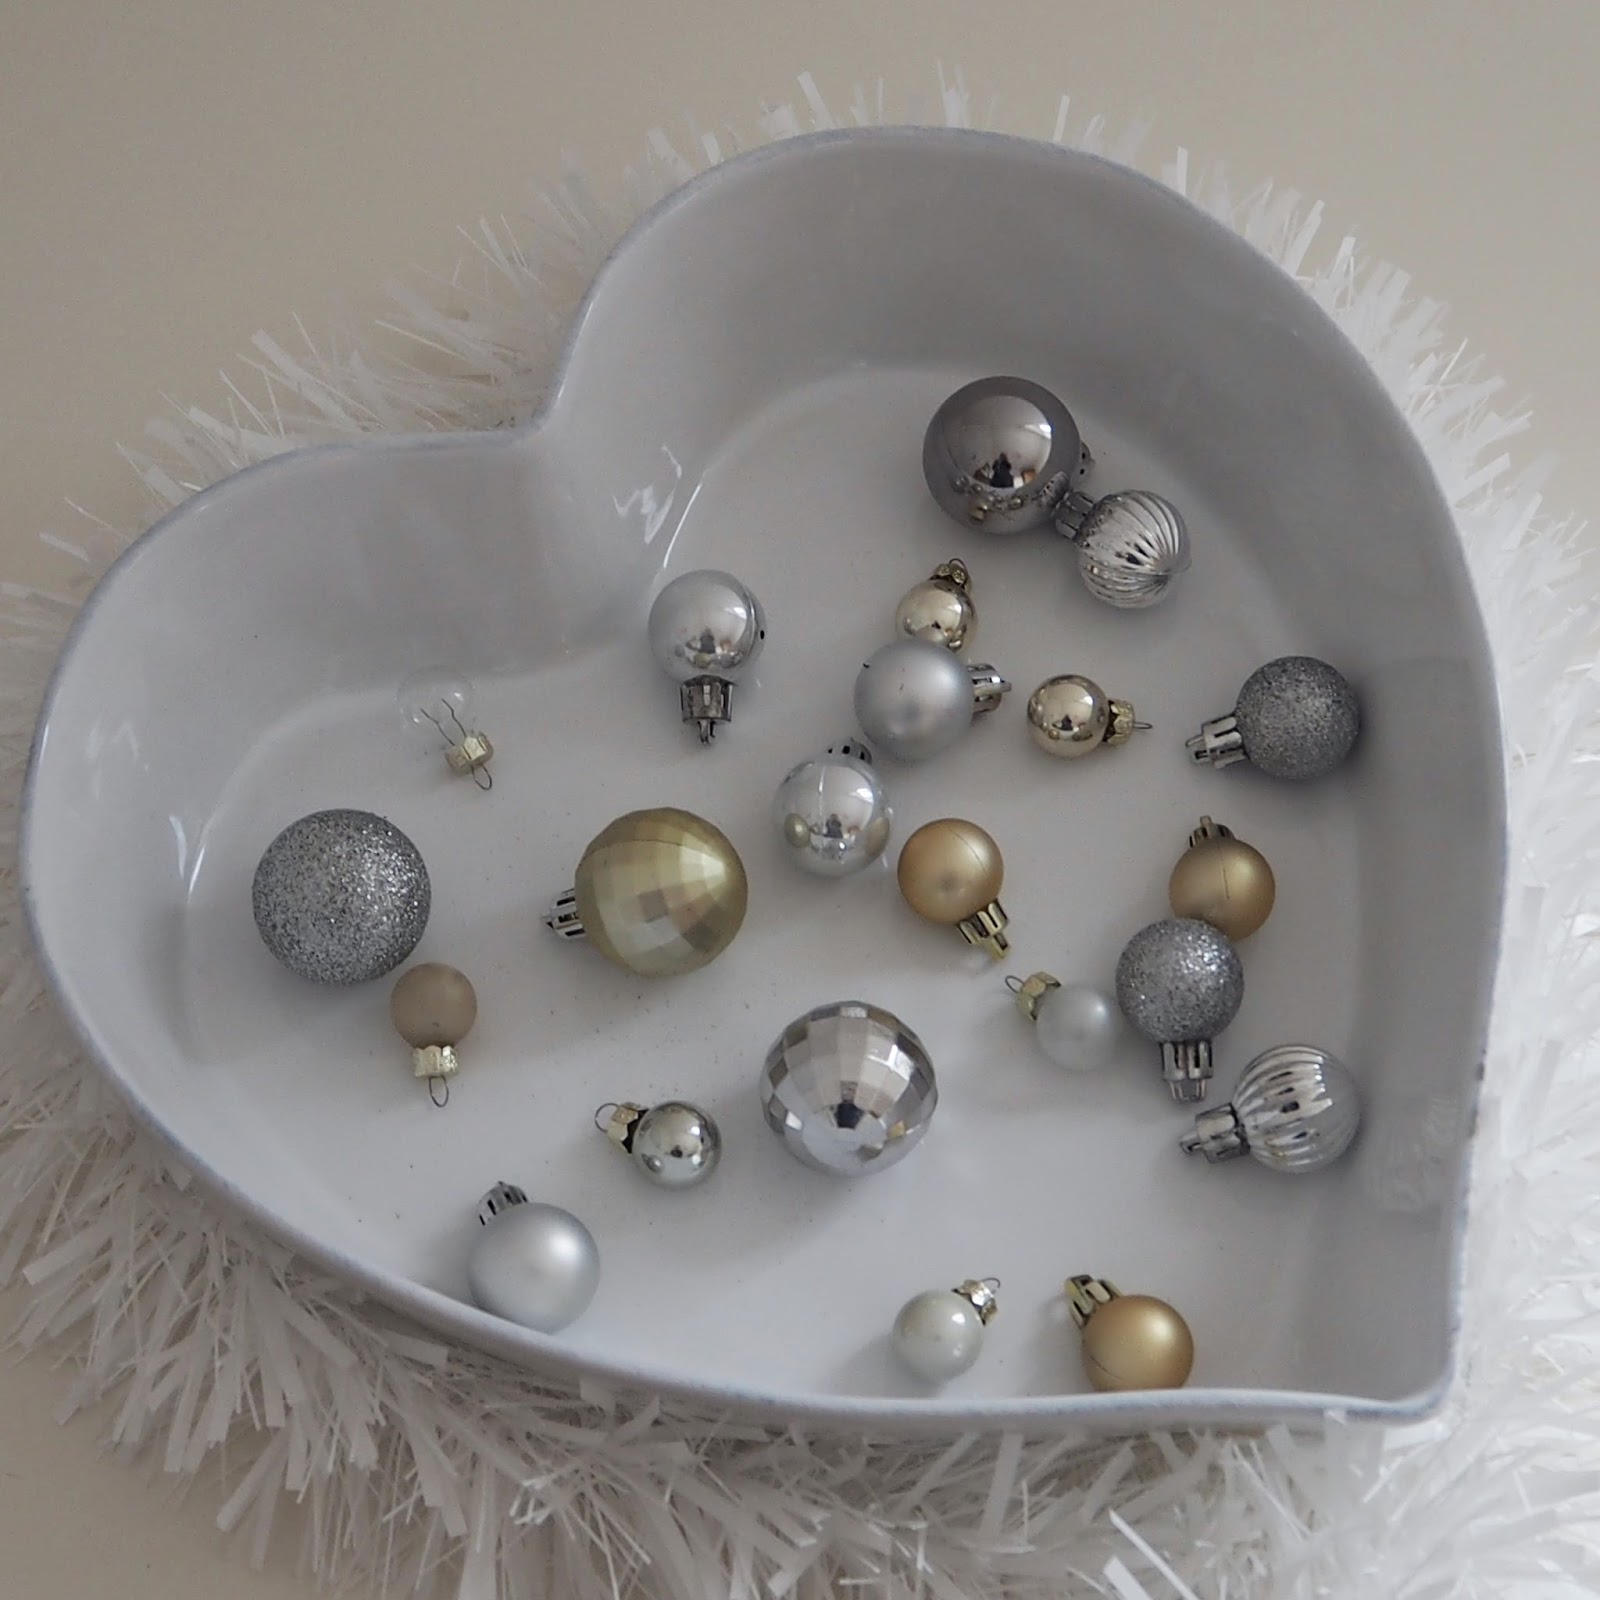 Christmas gift guide, The White Company Heart shaped dish